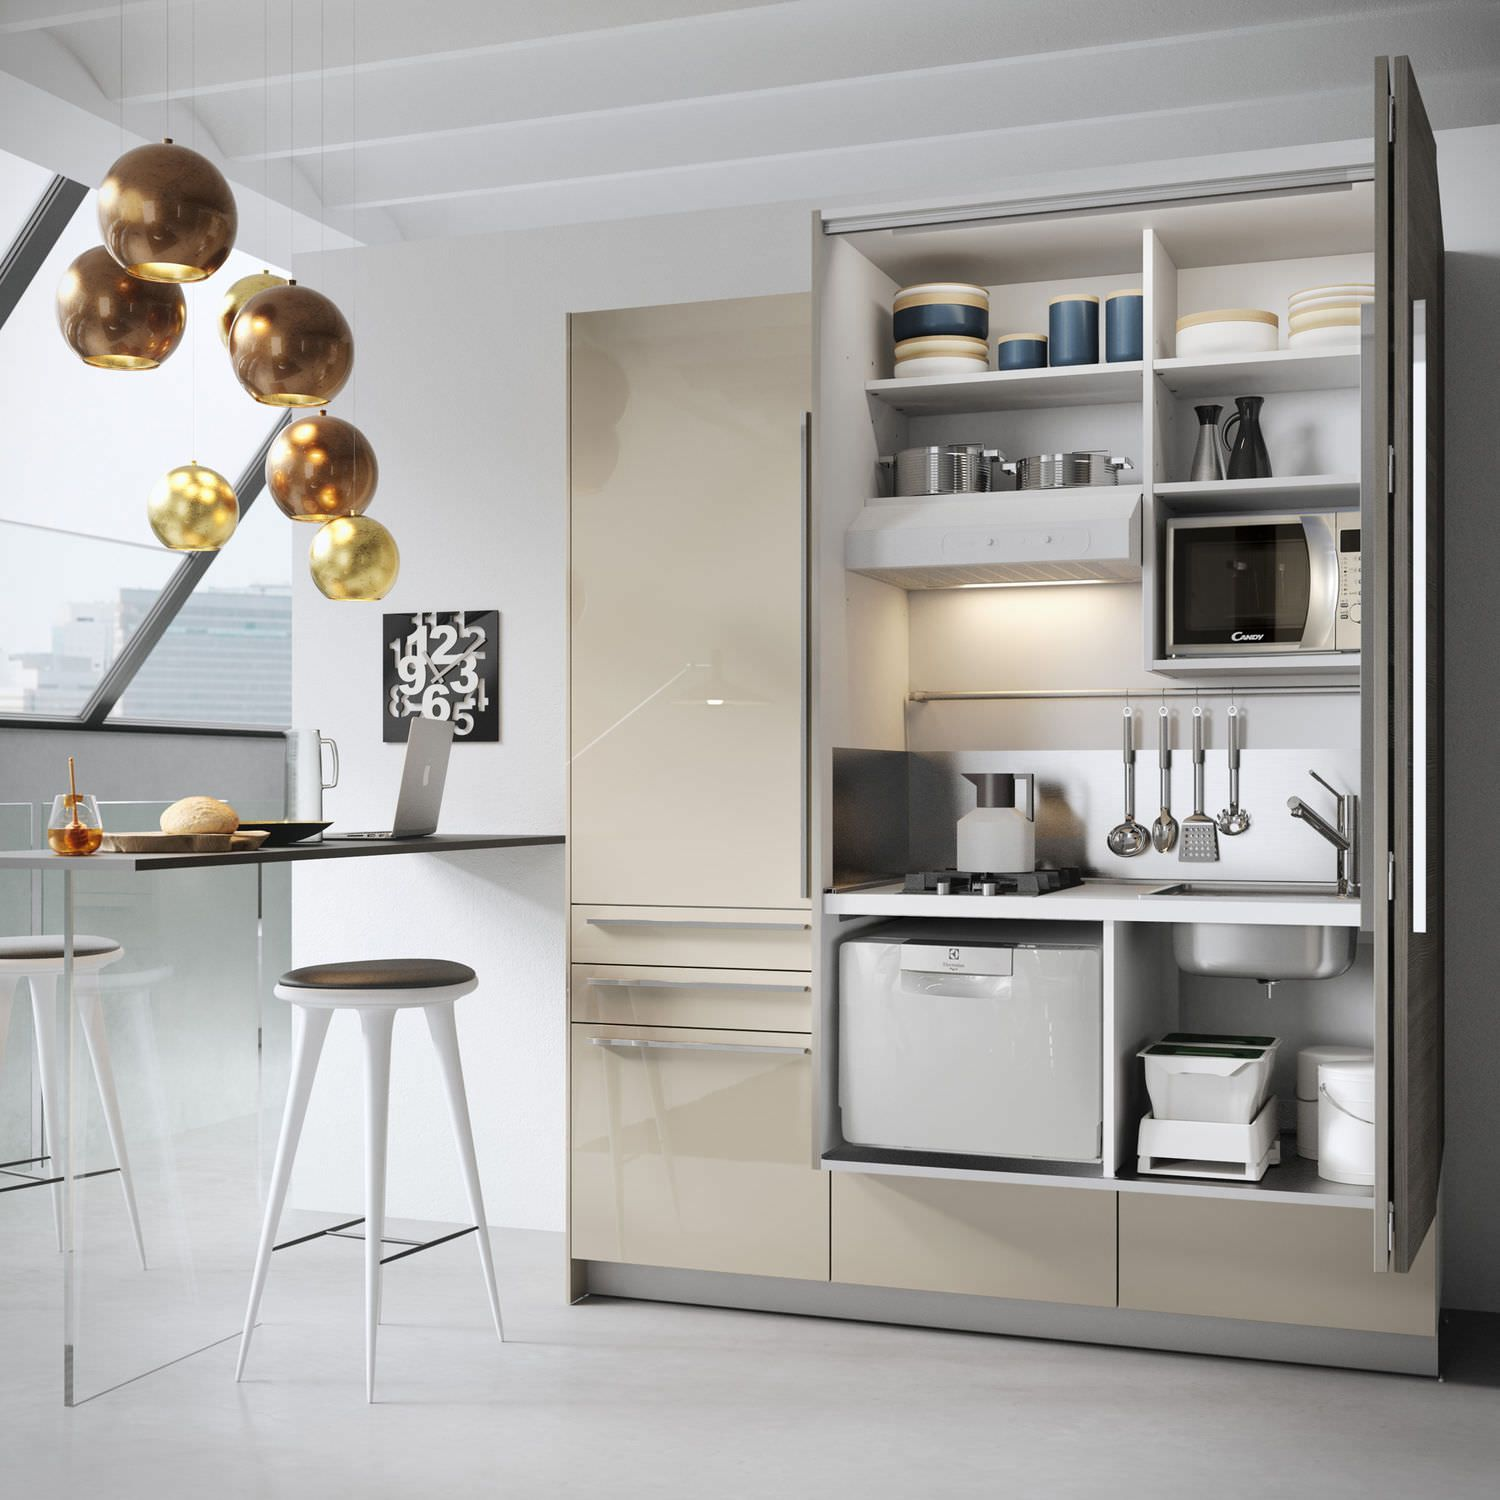 compact kitchen hidden with swing doors by minisystem - Compact Kitchen Ideas